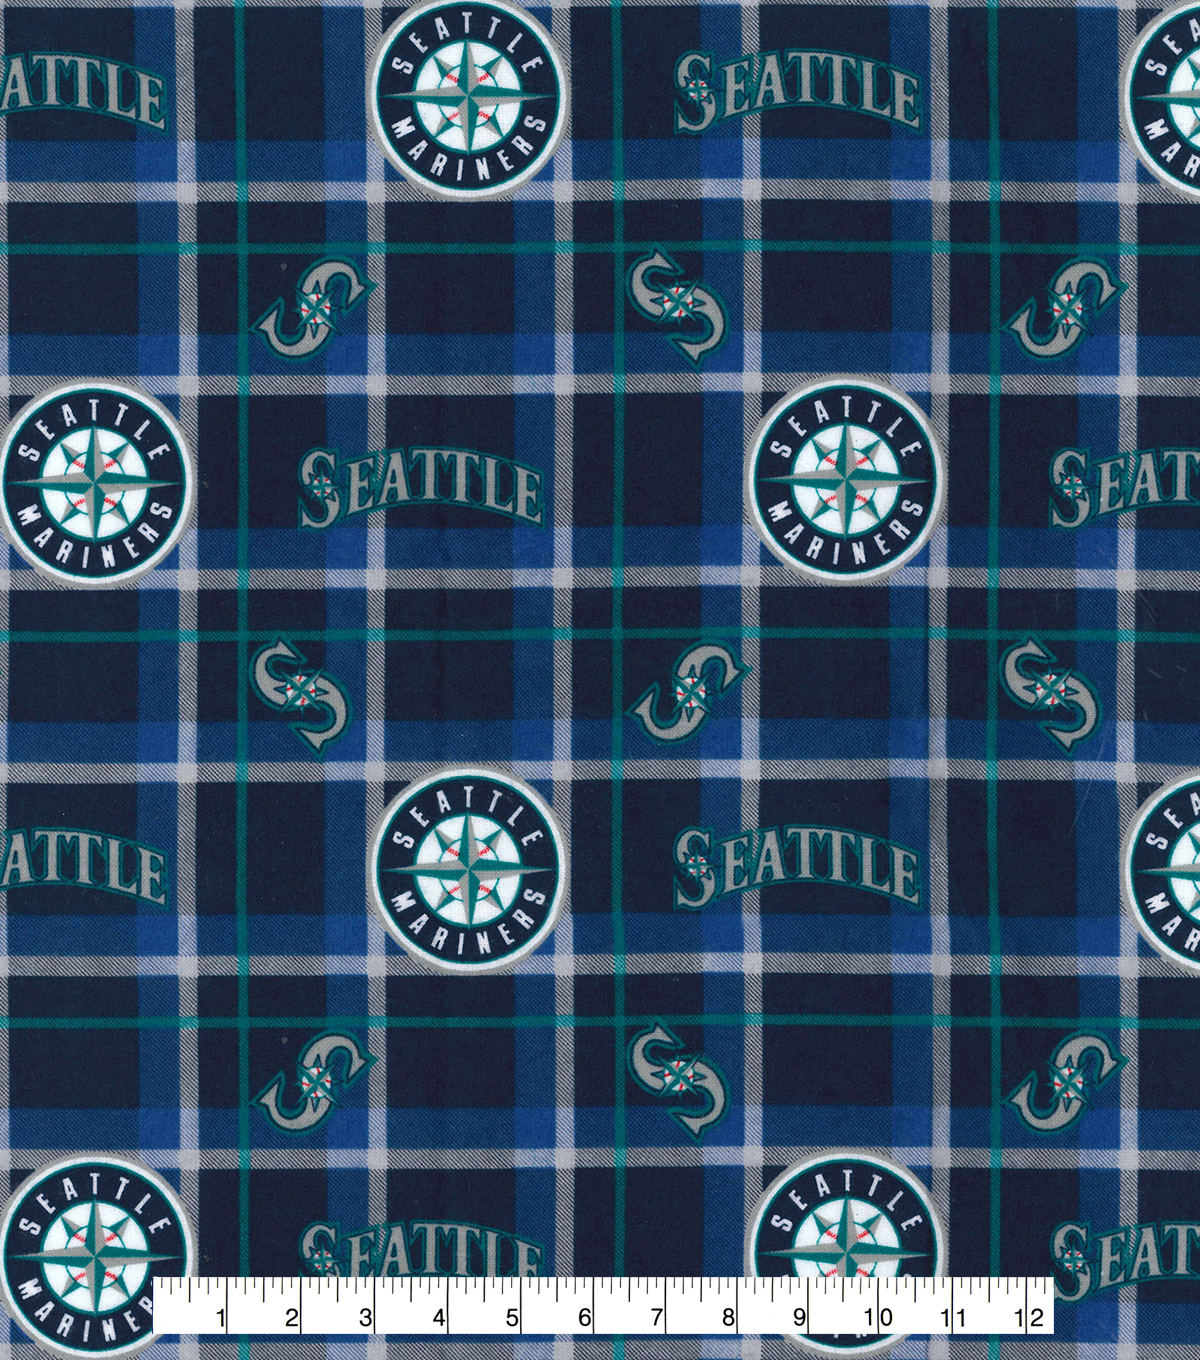 Seattle Mariners Flannel Fabric Plaid Joann